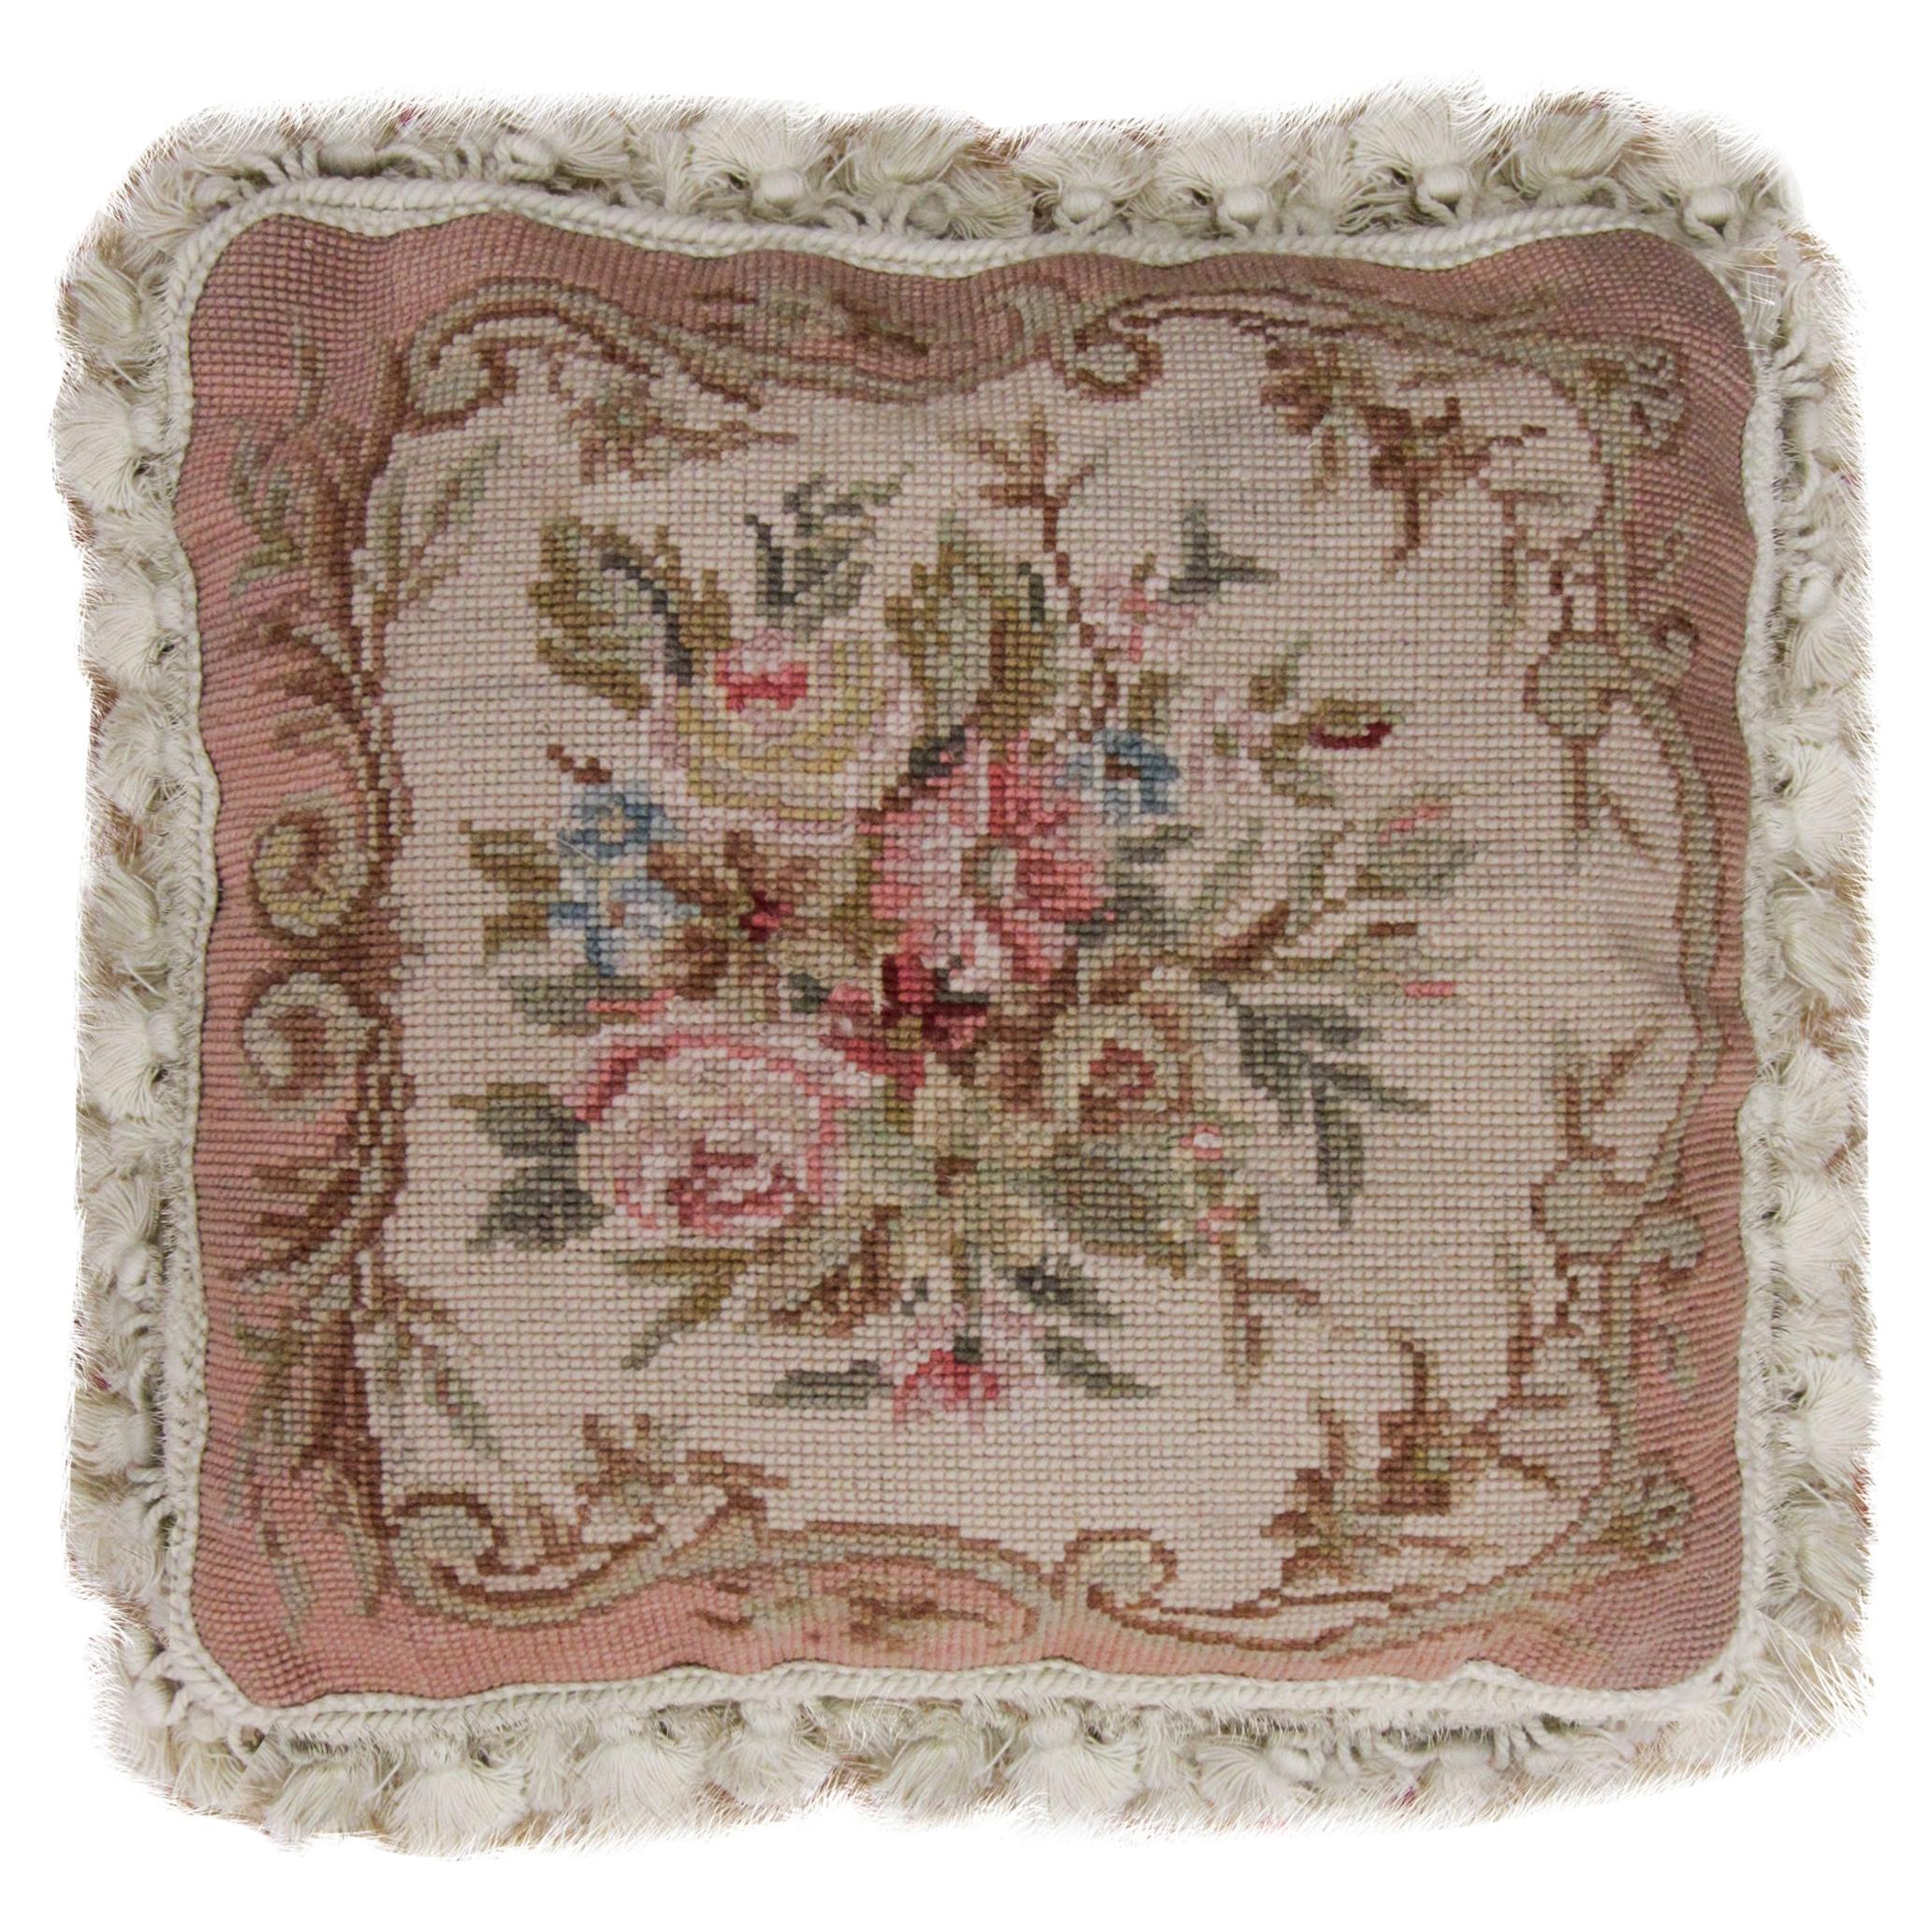 Vintage Floral Needlepoint Cushion Cover Handwoven Oriental Scatter Pillow